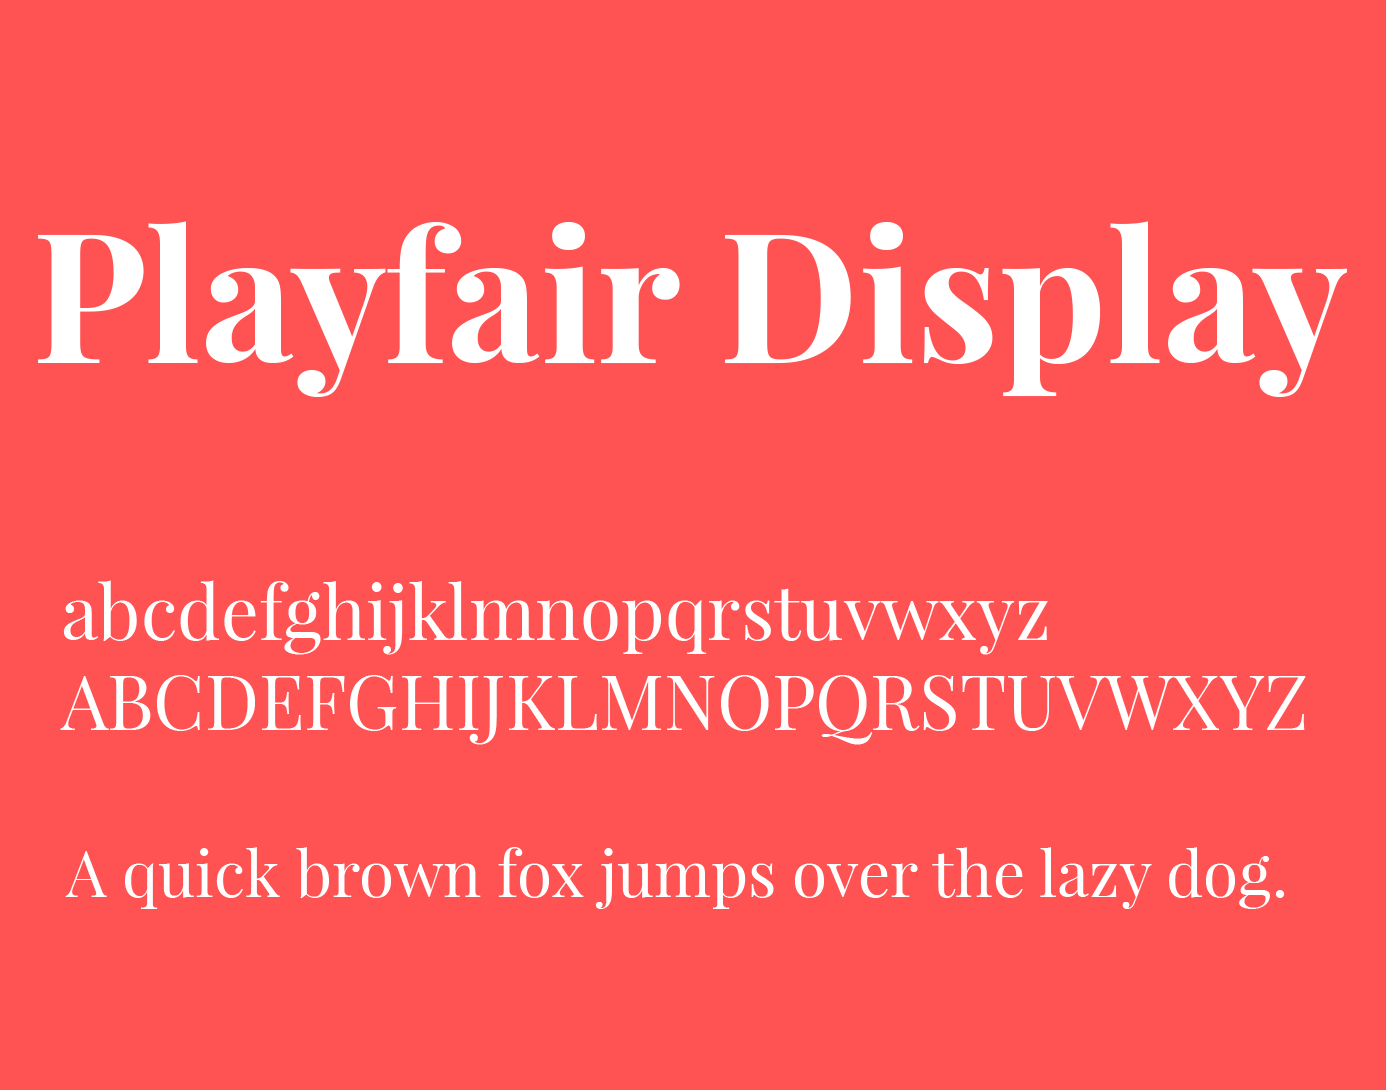 playfair-display-font